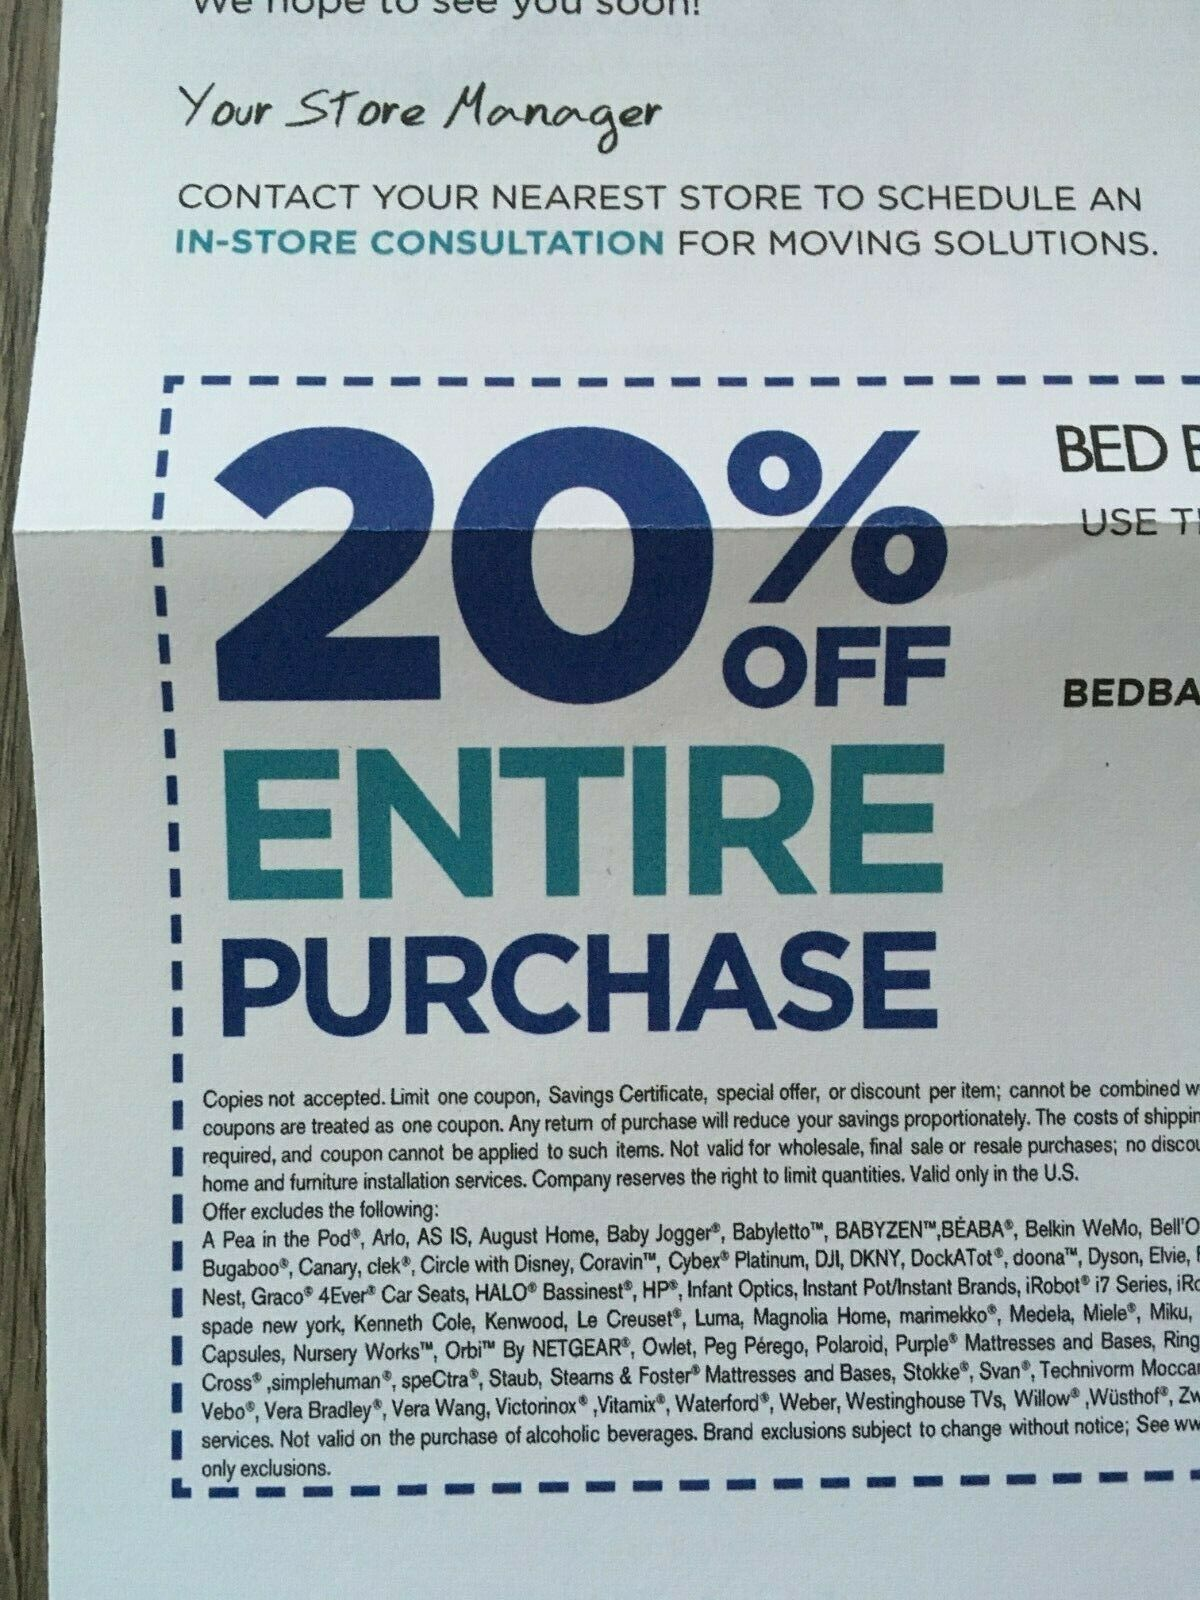 Bed Bath And Beyond 20 Off Entire Purchase Coupon Exp 2 11 2020